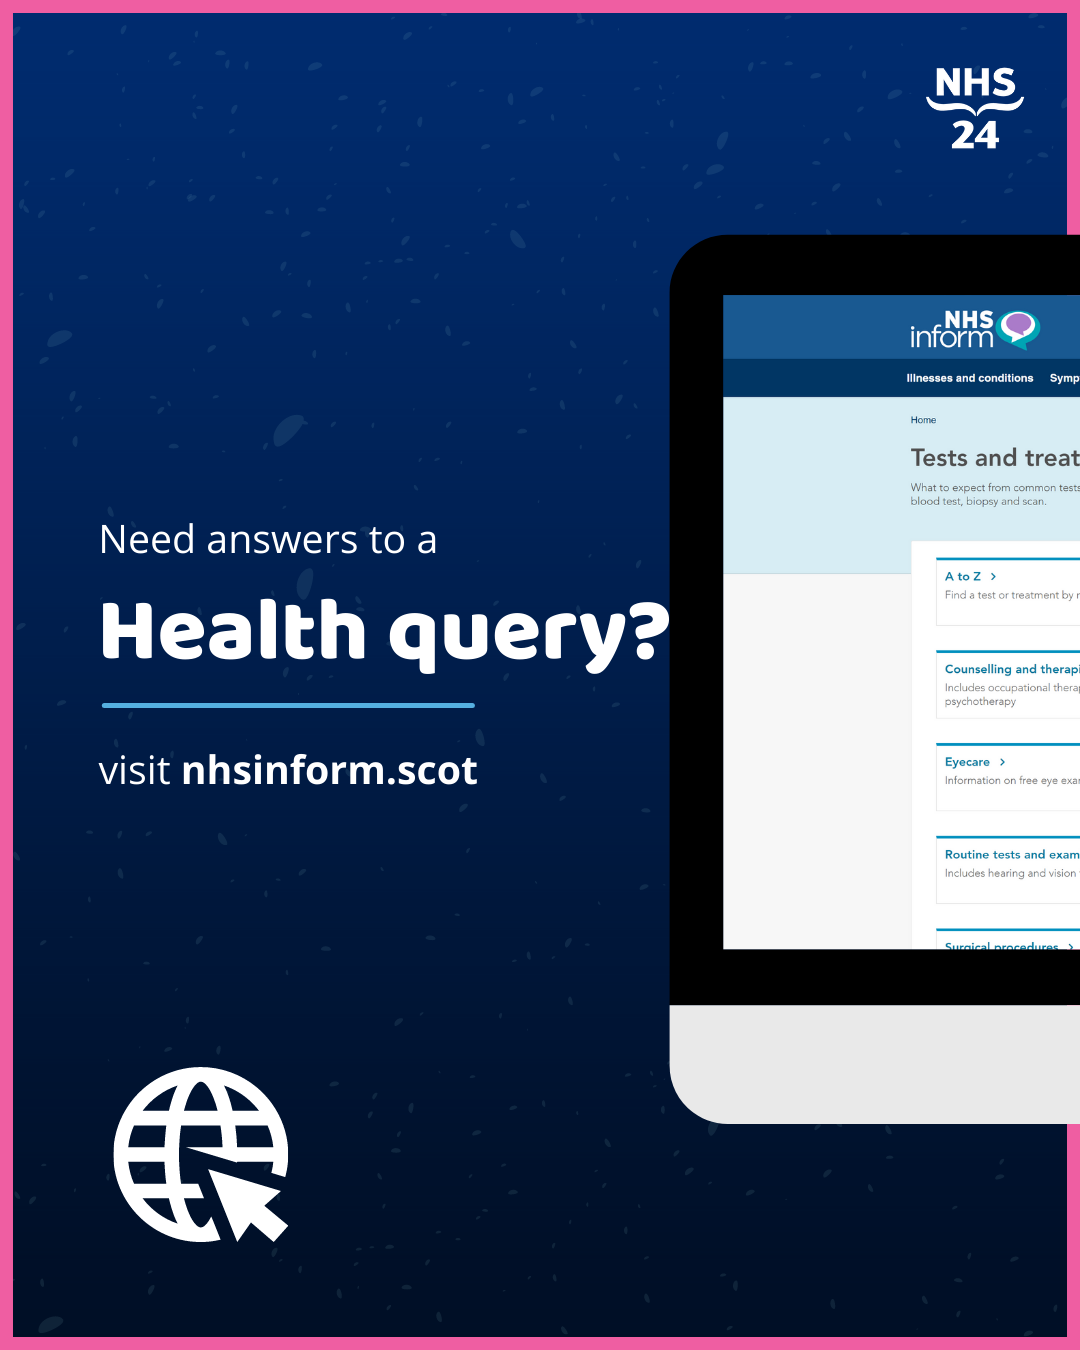 NHS Inform - Health Query